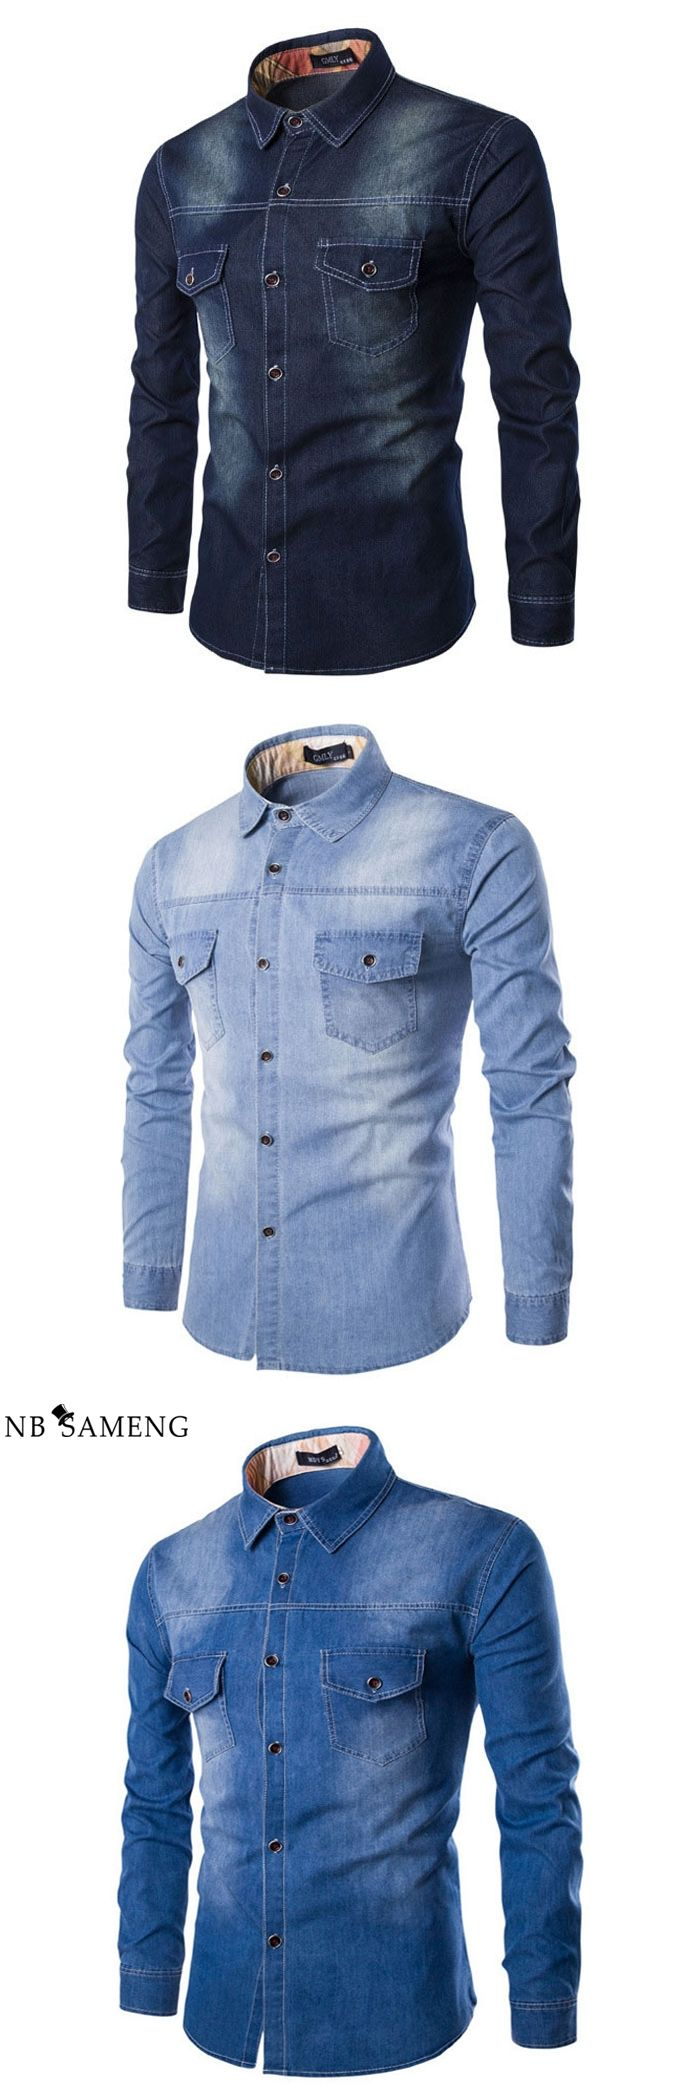 2016 Brand Men Casual Denim Shirt Autumn Slim Fit Jeans Male Long Sleeve Shirts Mens Clothing Camisa Masculina 3 Colors 13M0661